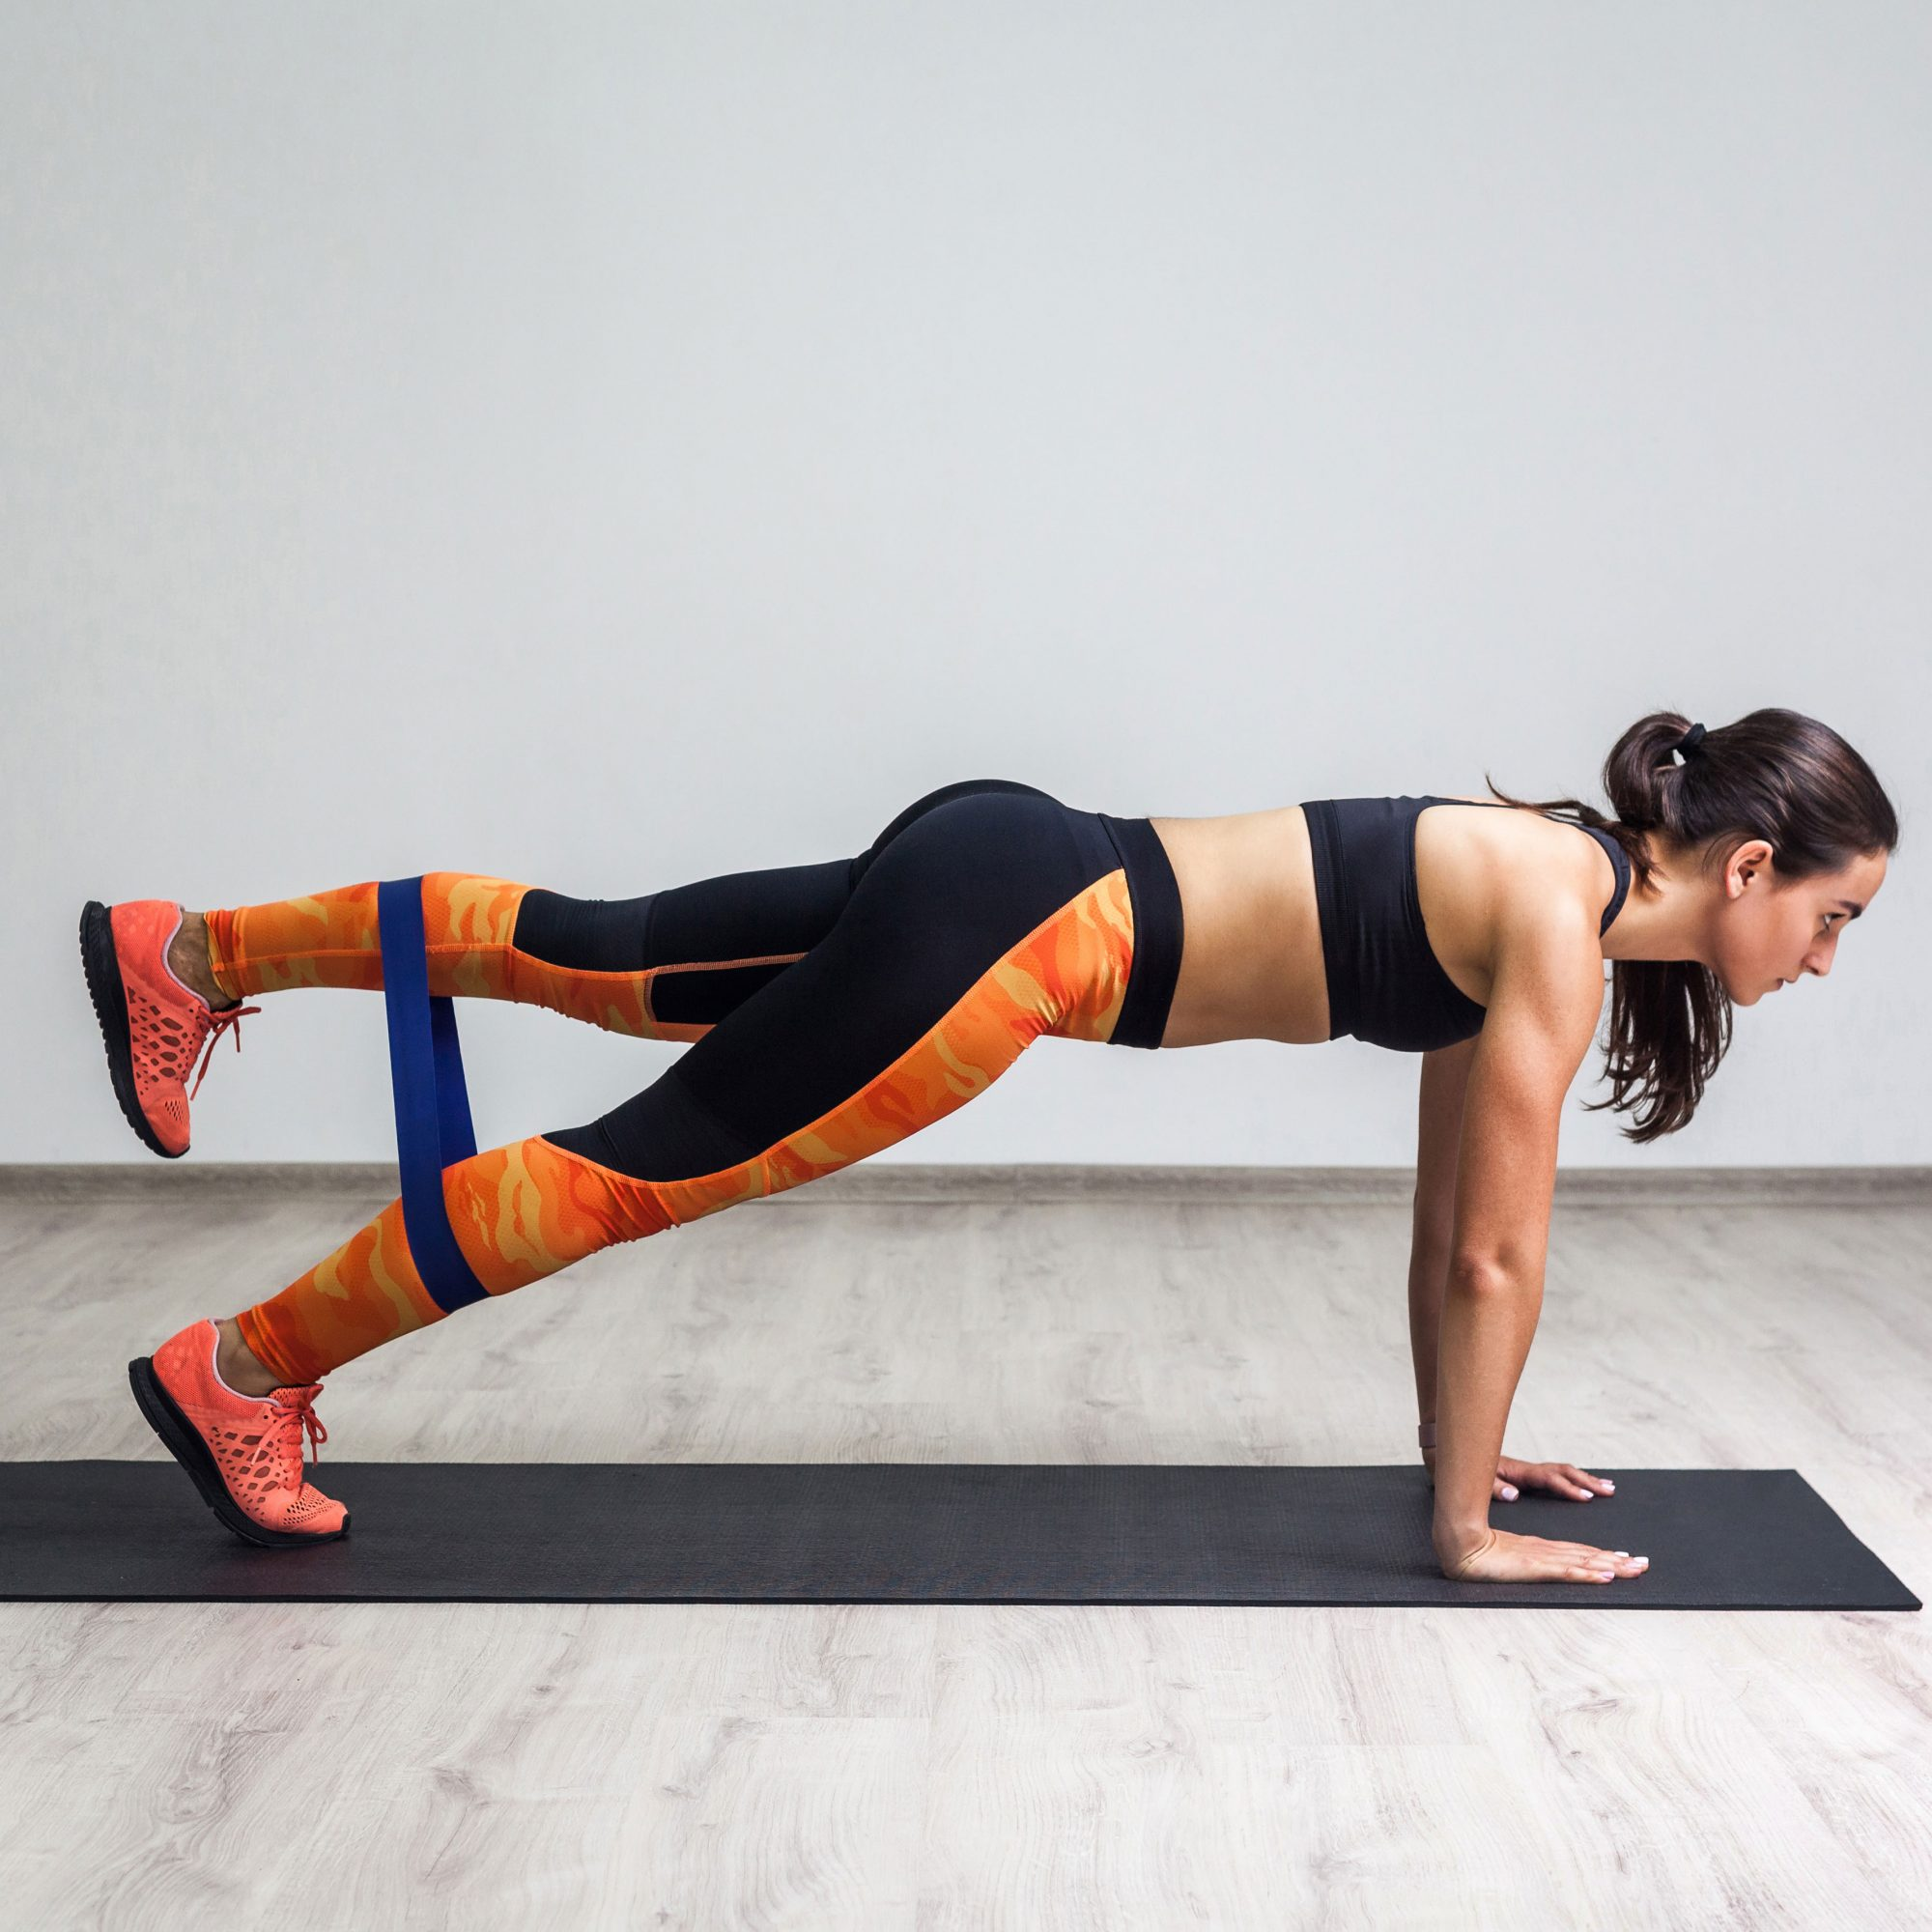 Woman_Doing_A_Push_Up_With_A_Single_Leg_Raised